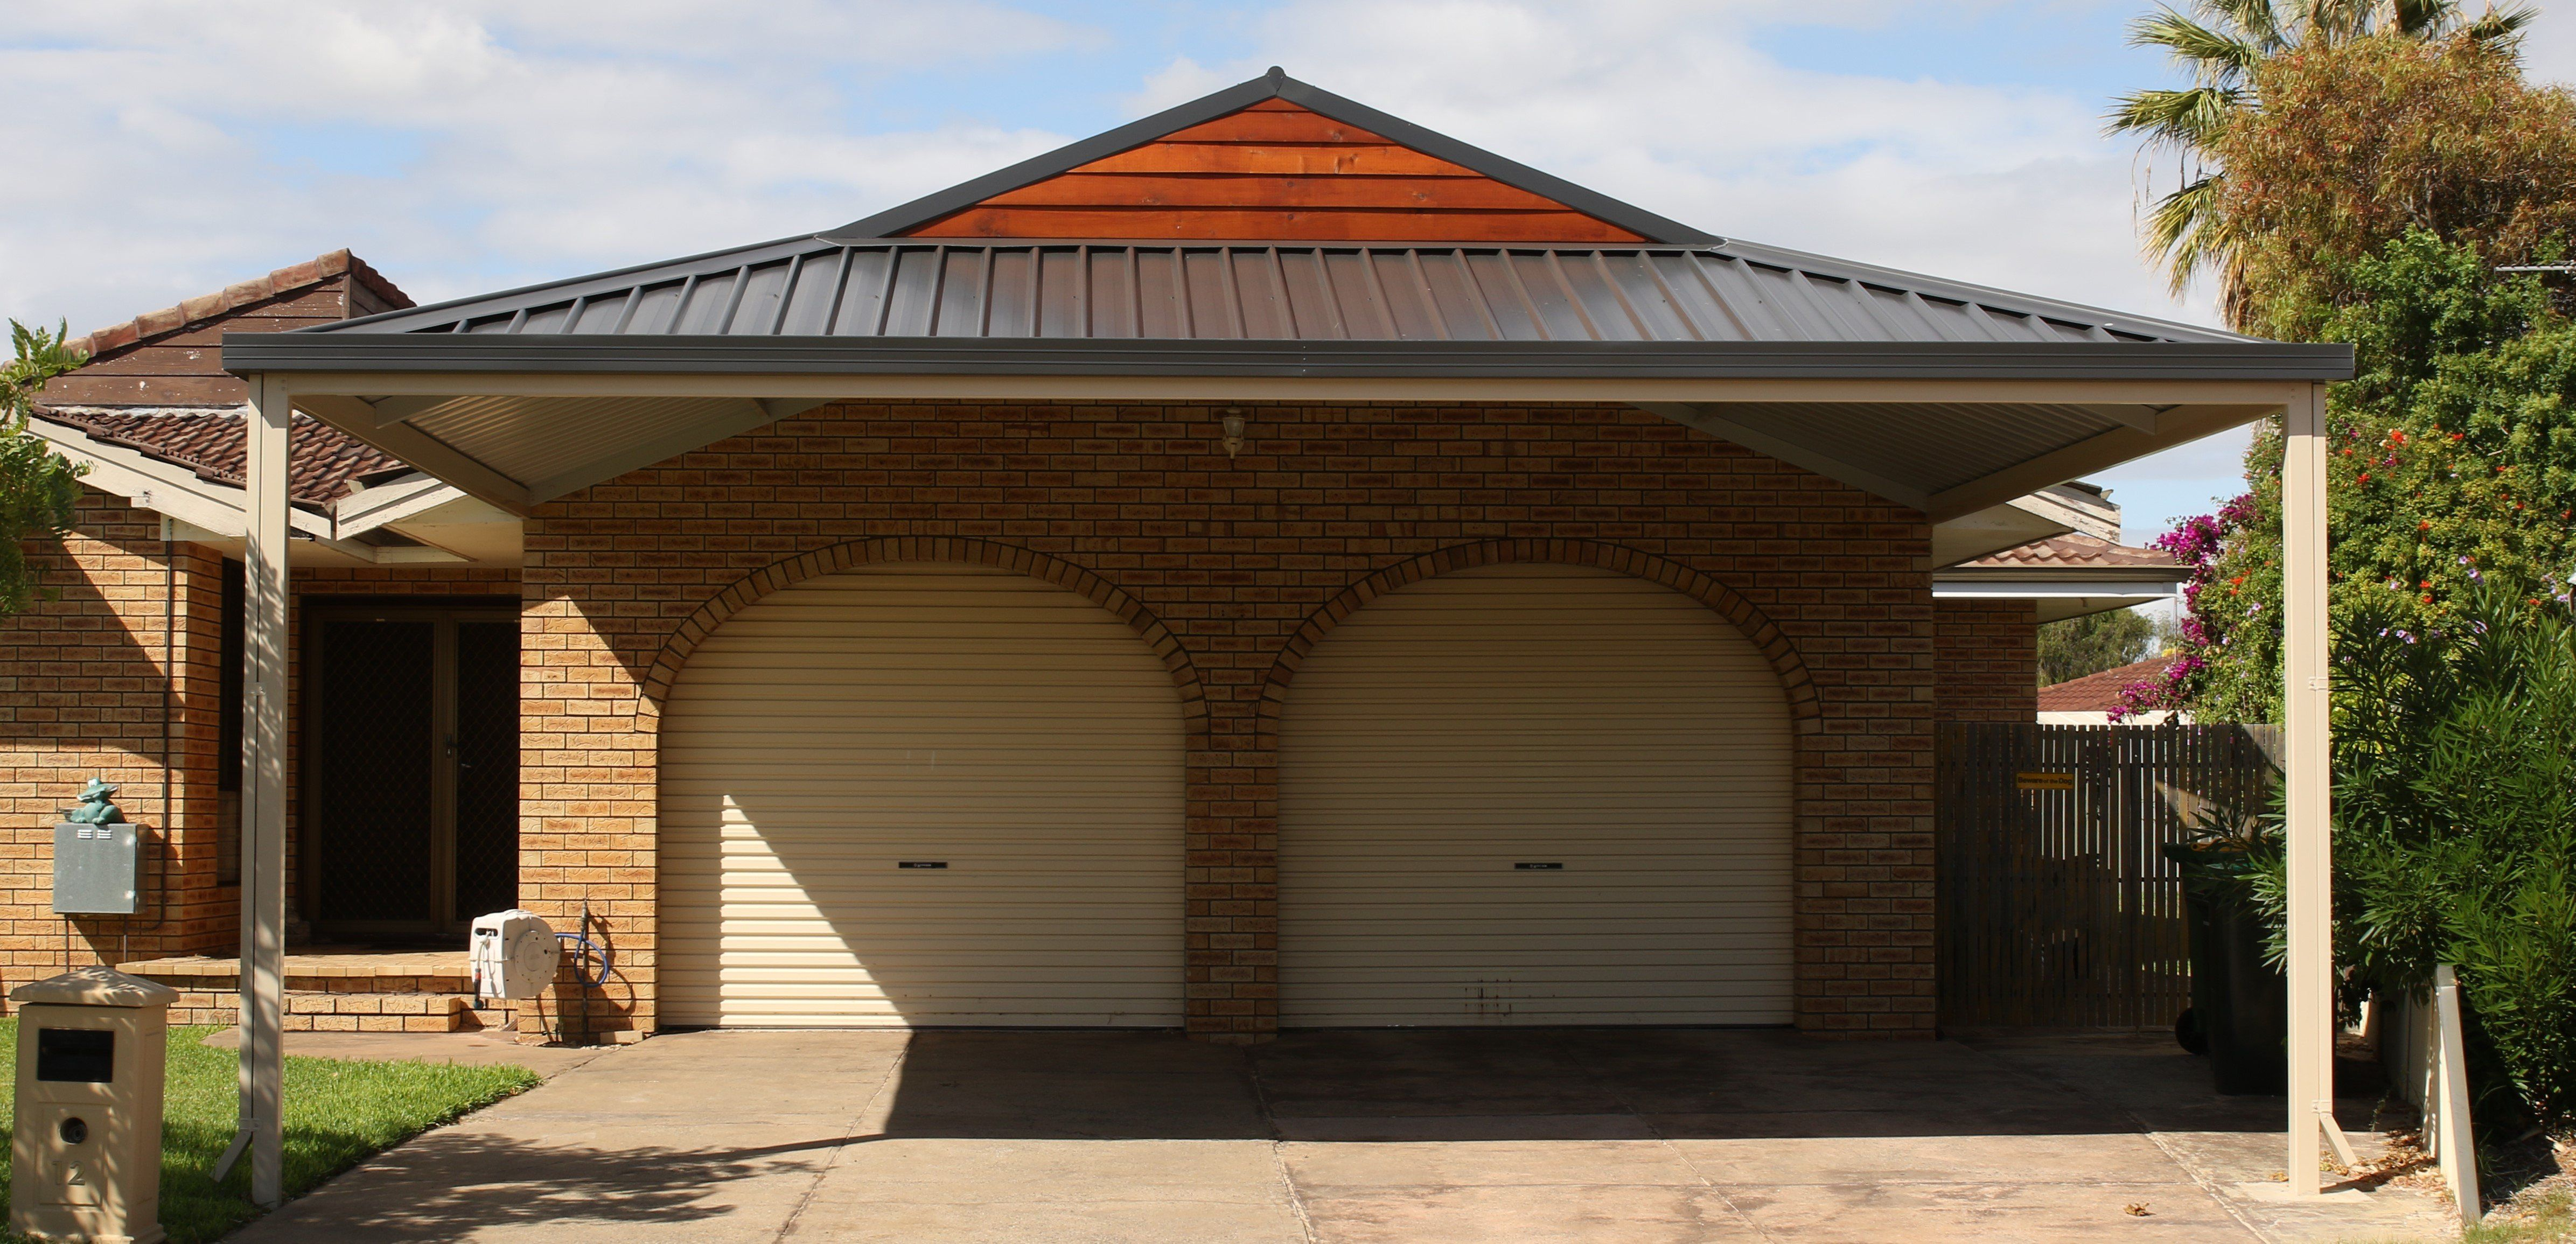 Cheap Carports Carport Garage Portable Carport Diy Carport Palram Carport Wood Carport House Carport Cheap C With Images Carport Prices Portable Carport Diy Carport